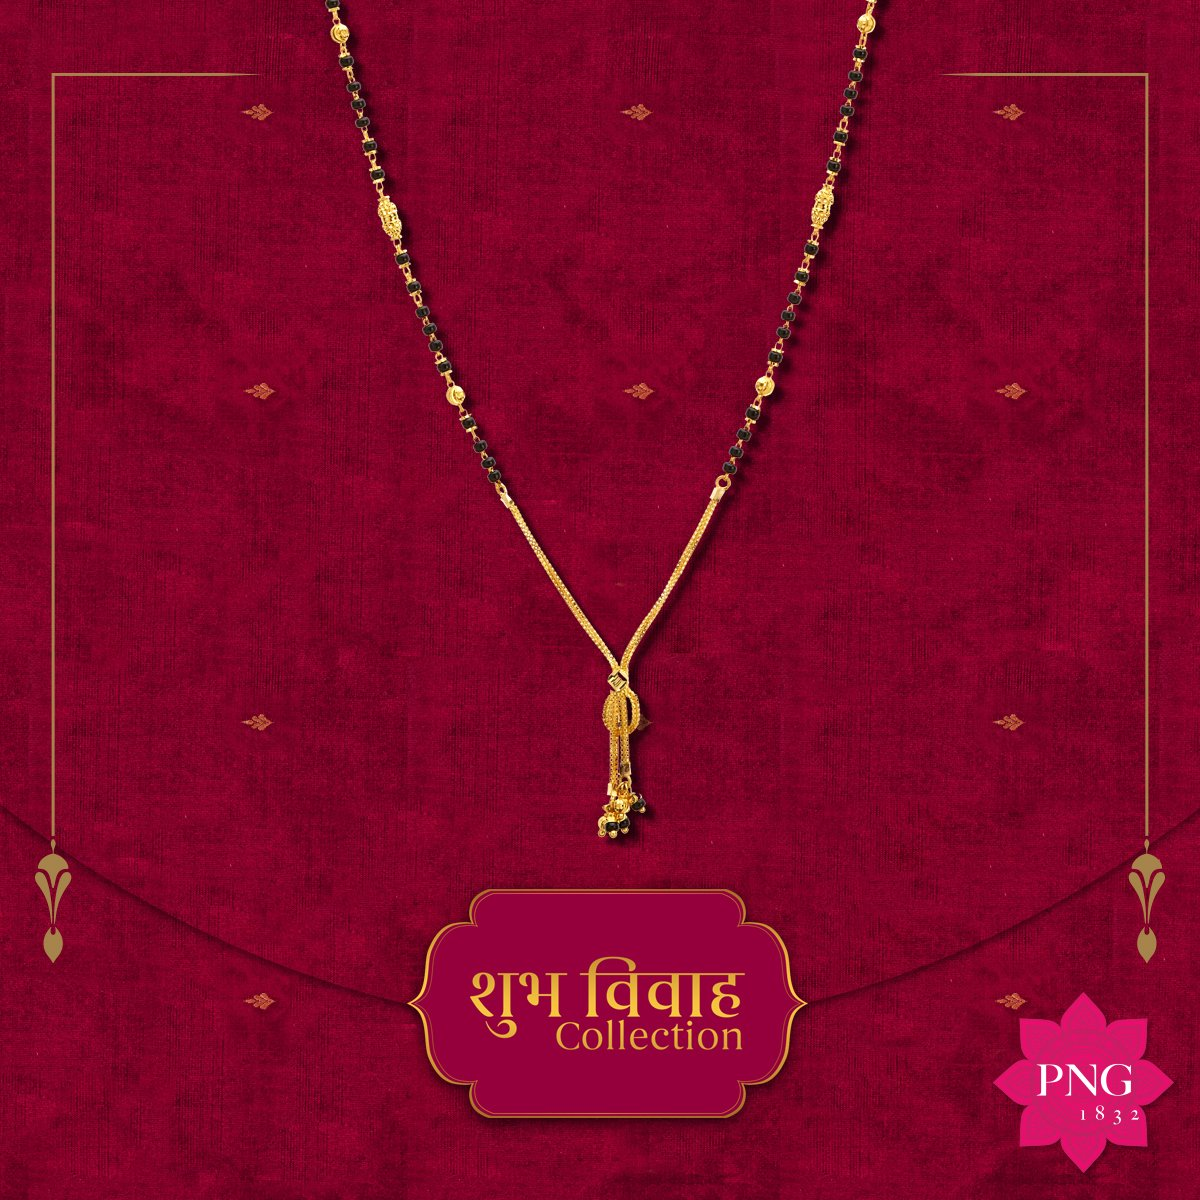 Png 1832 On Twitter Modern And Stylish This Gold Mangalsutra Will Definitely Steal Everyone S Attention View The Mangalsutra Collection Athttps Goo Gl 8wzvpx Shubhvivaahcollection Weddingjewellery Png1832 Pune Nalstop Wedding Jewellery